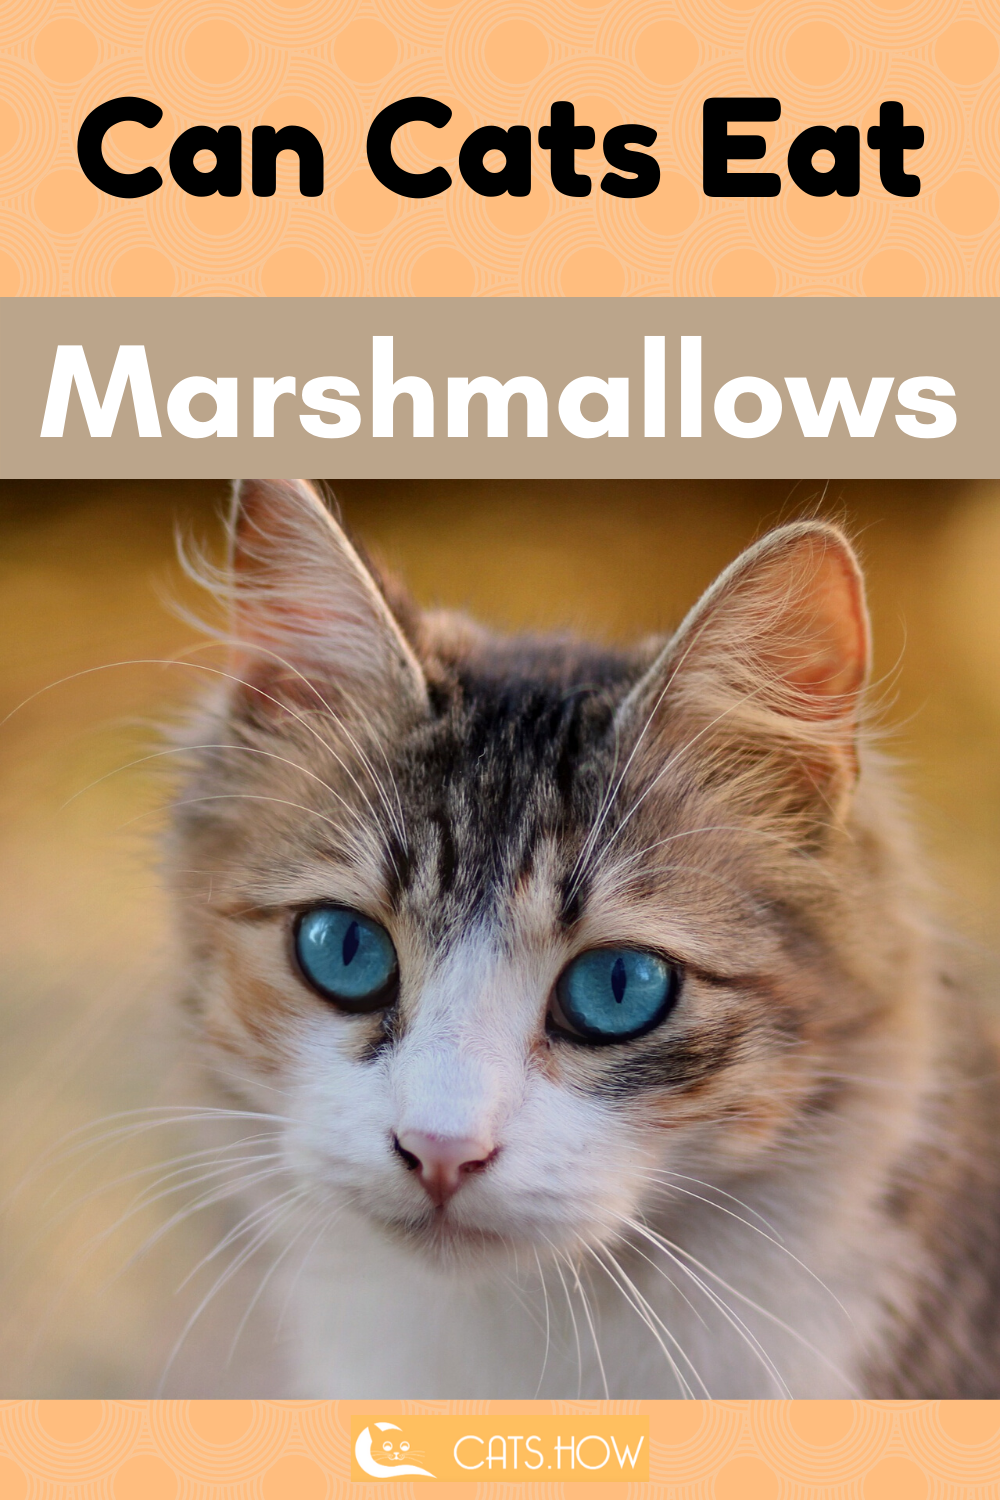 Can Cats Eat Marshmallows In 2020 Cats Cat Facts Cat Diet